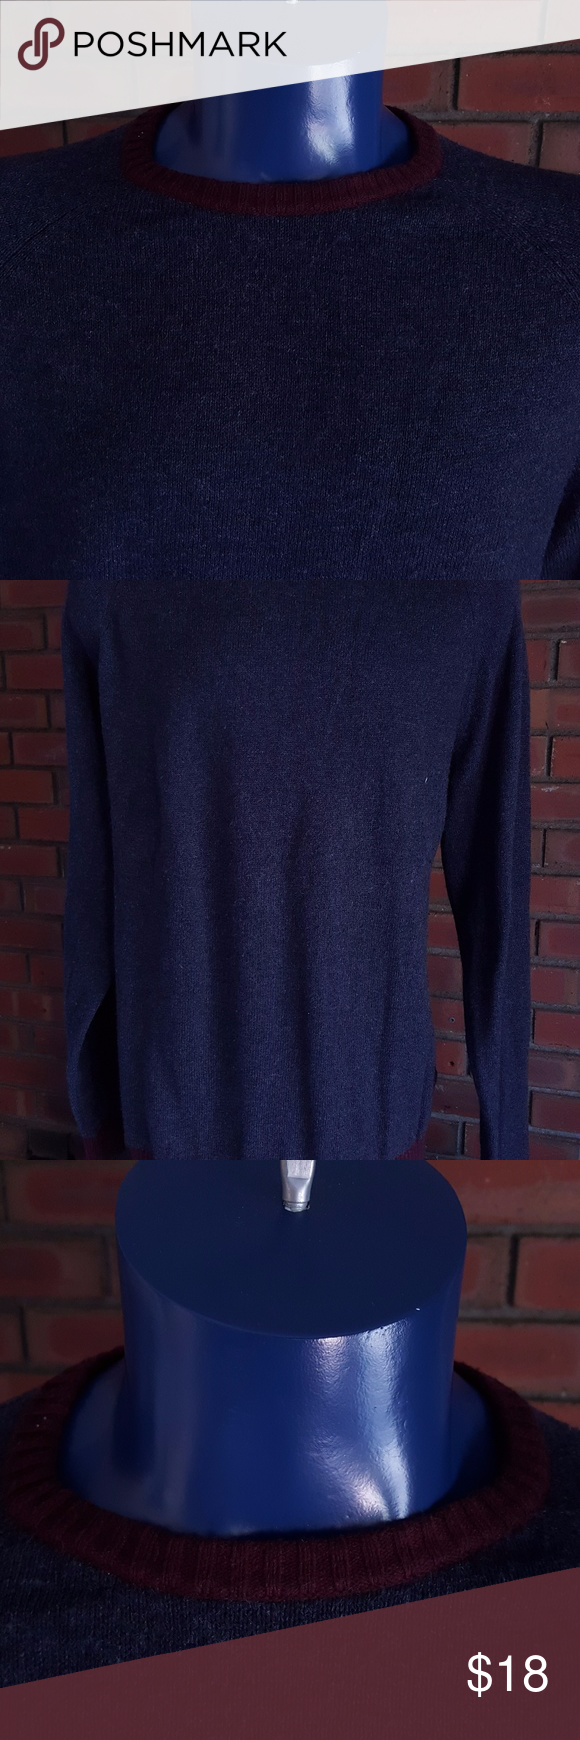 Old Navy Men's Long Sleeve Crewneck Sweater (XXL) | Crewneck ...